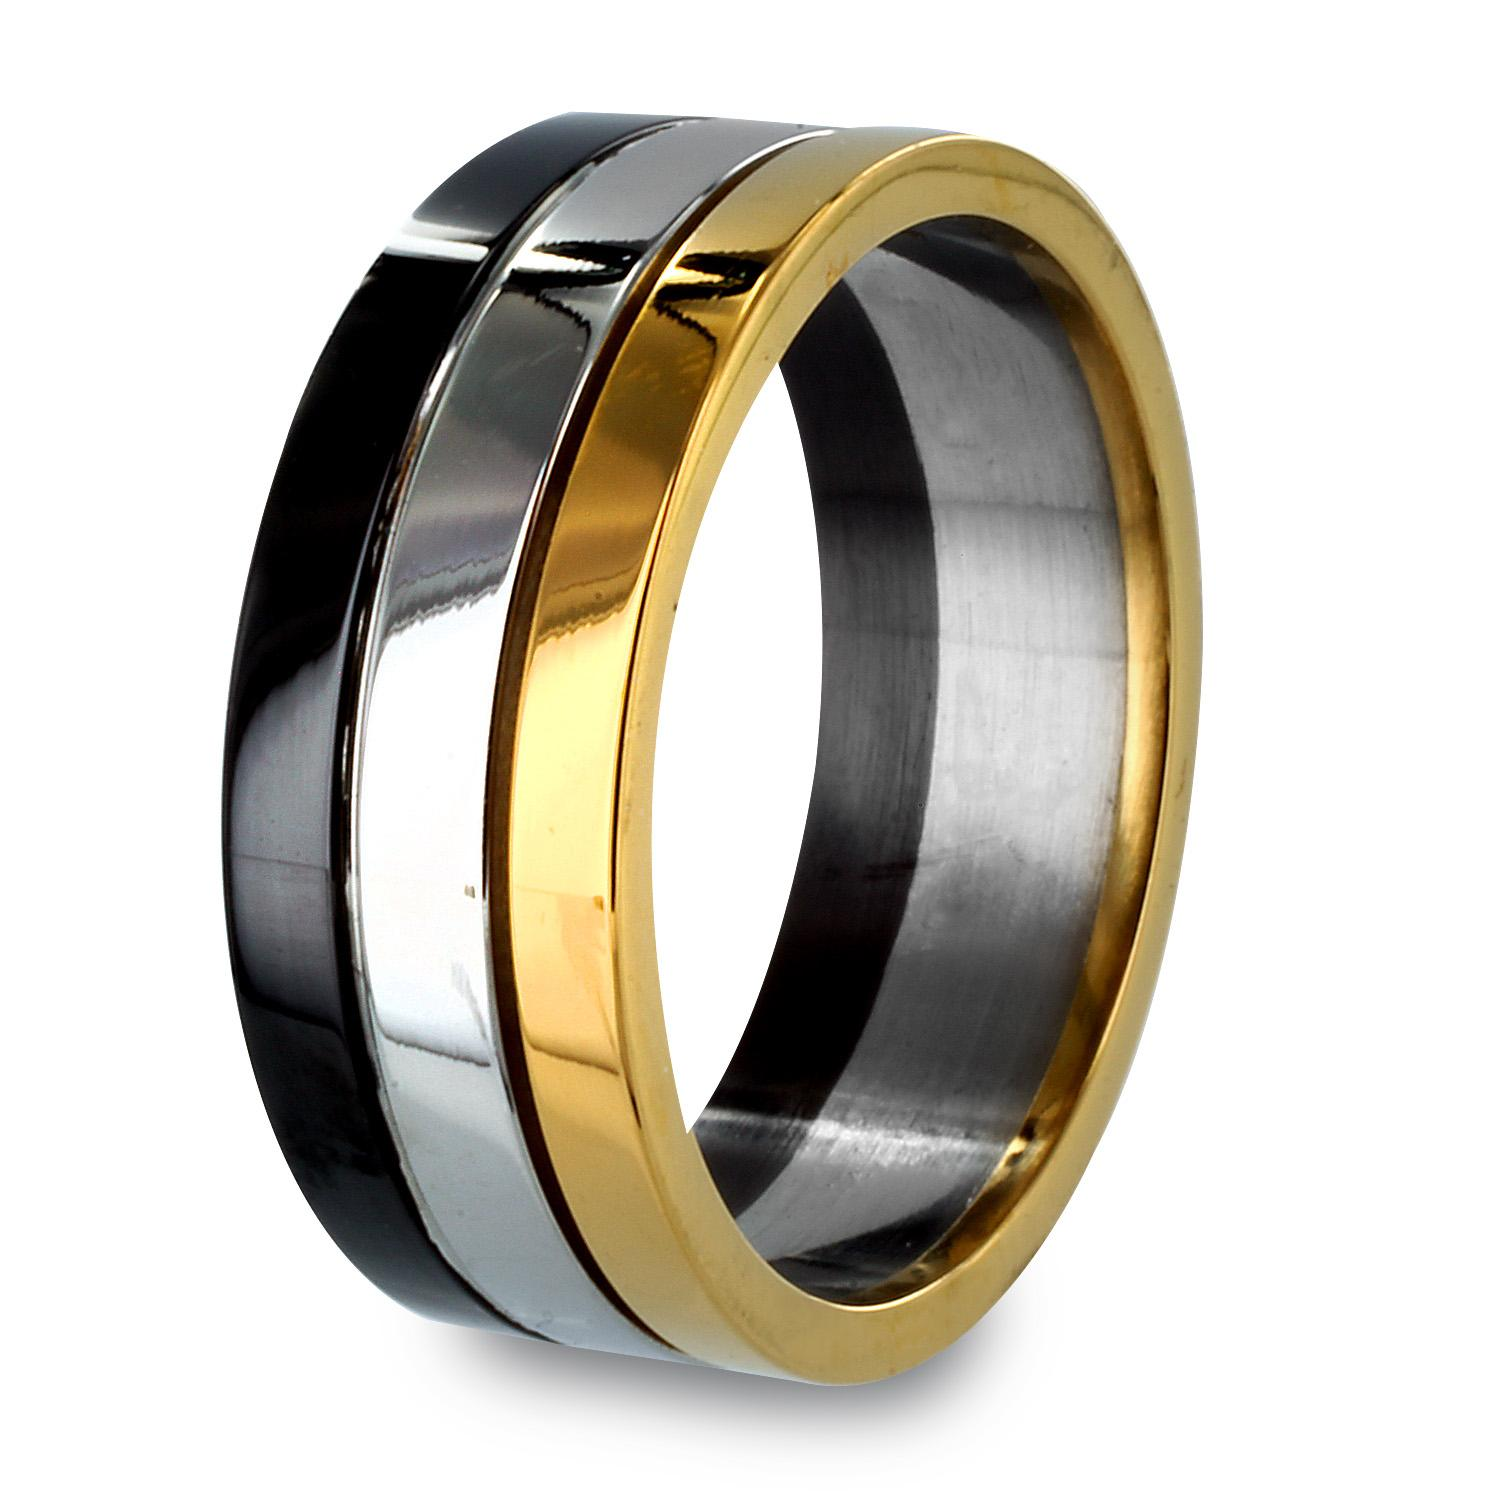 Black and Gold Plated Stainless Steel Stacked Grooved Ring